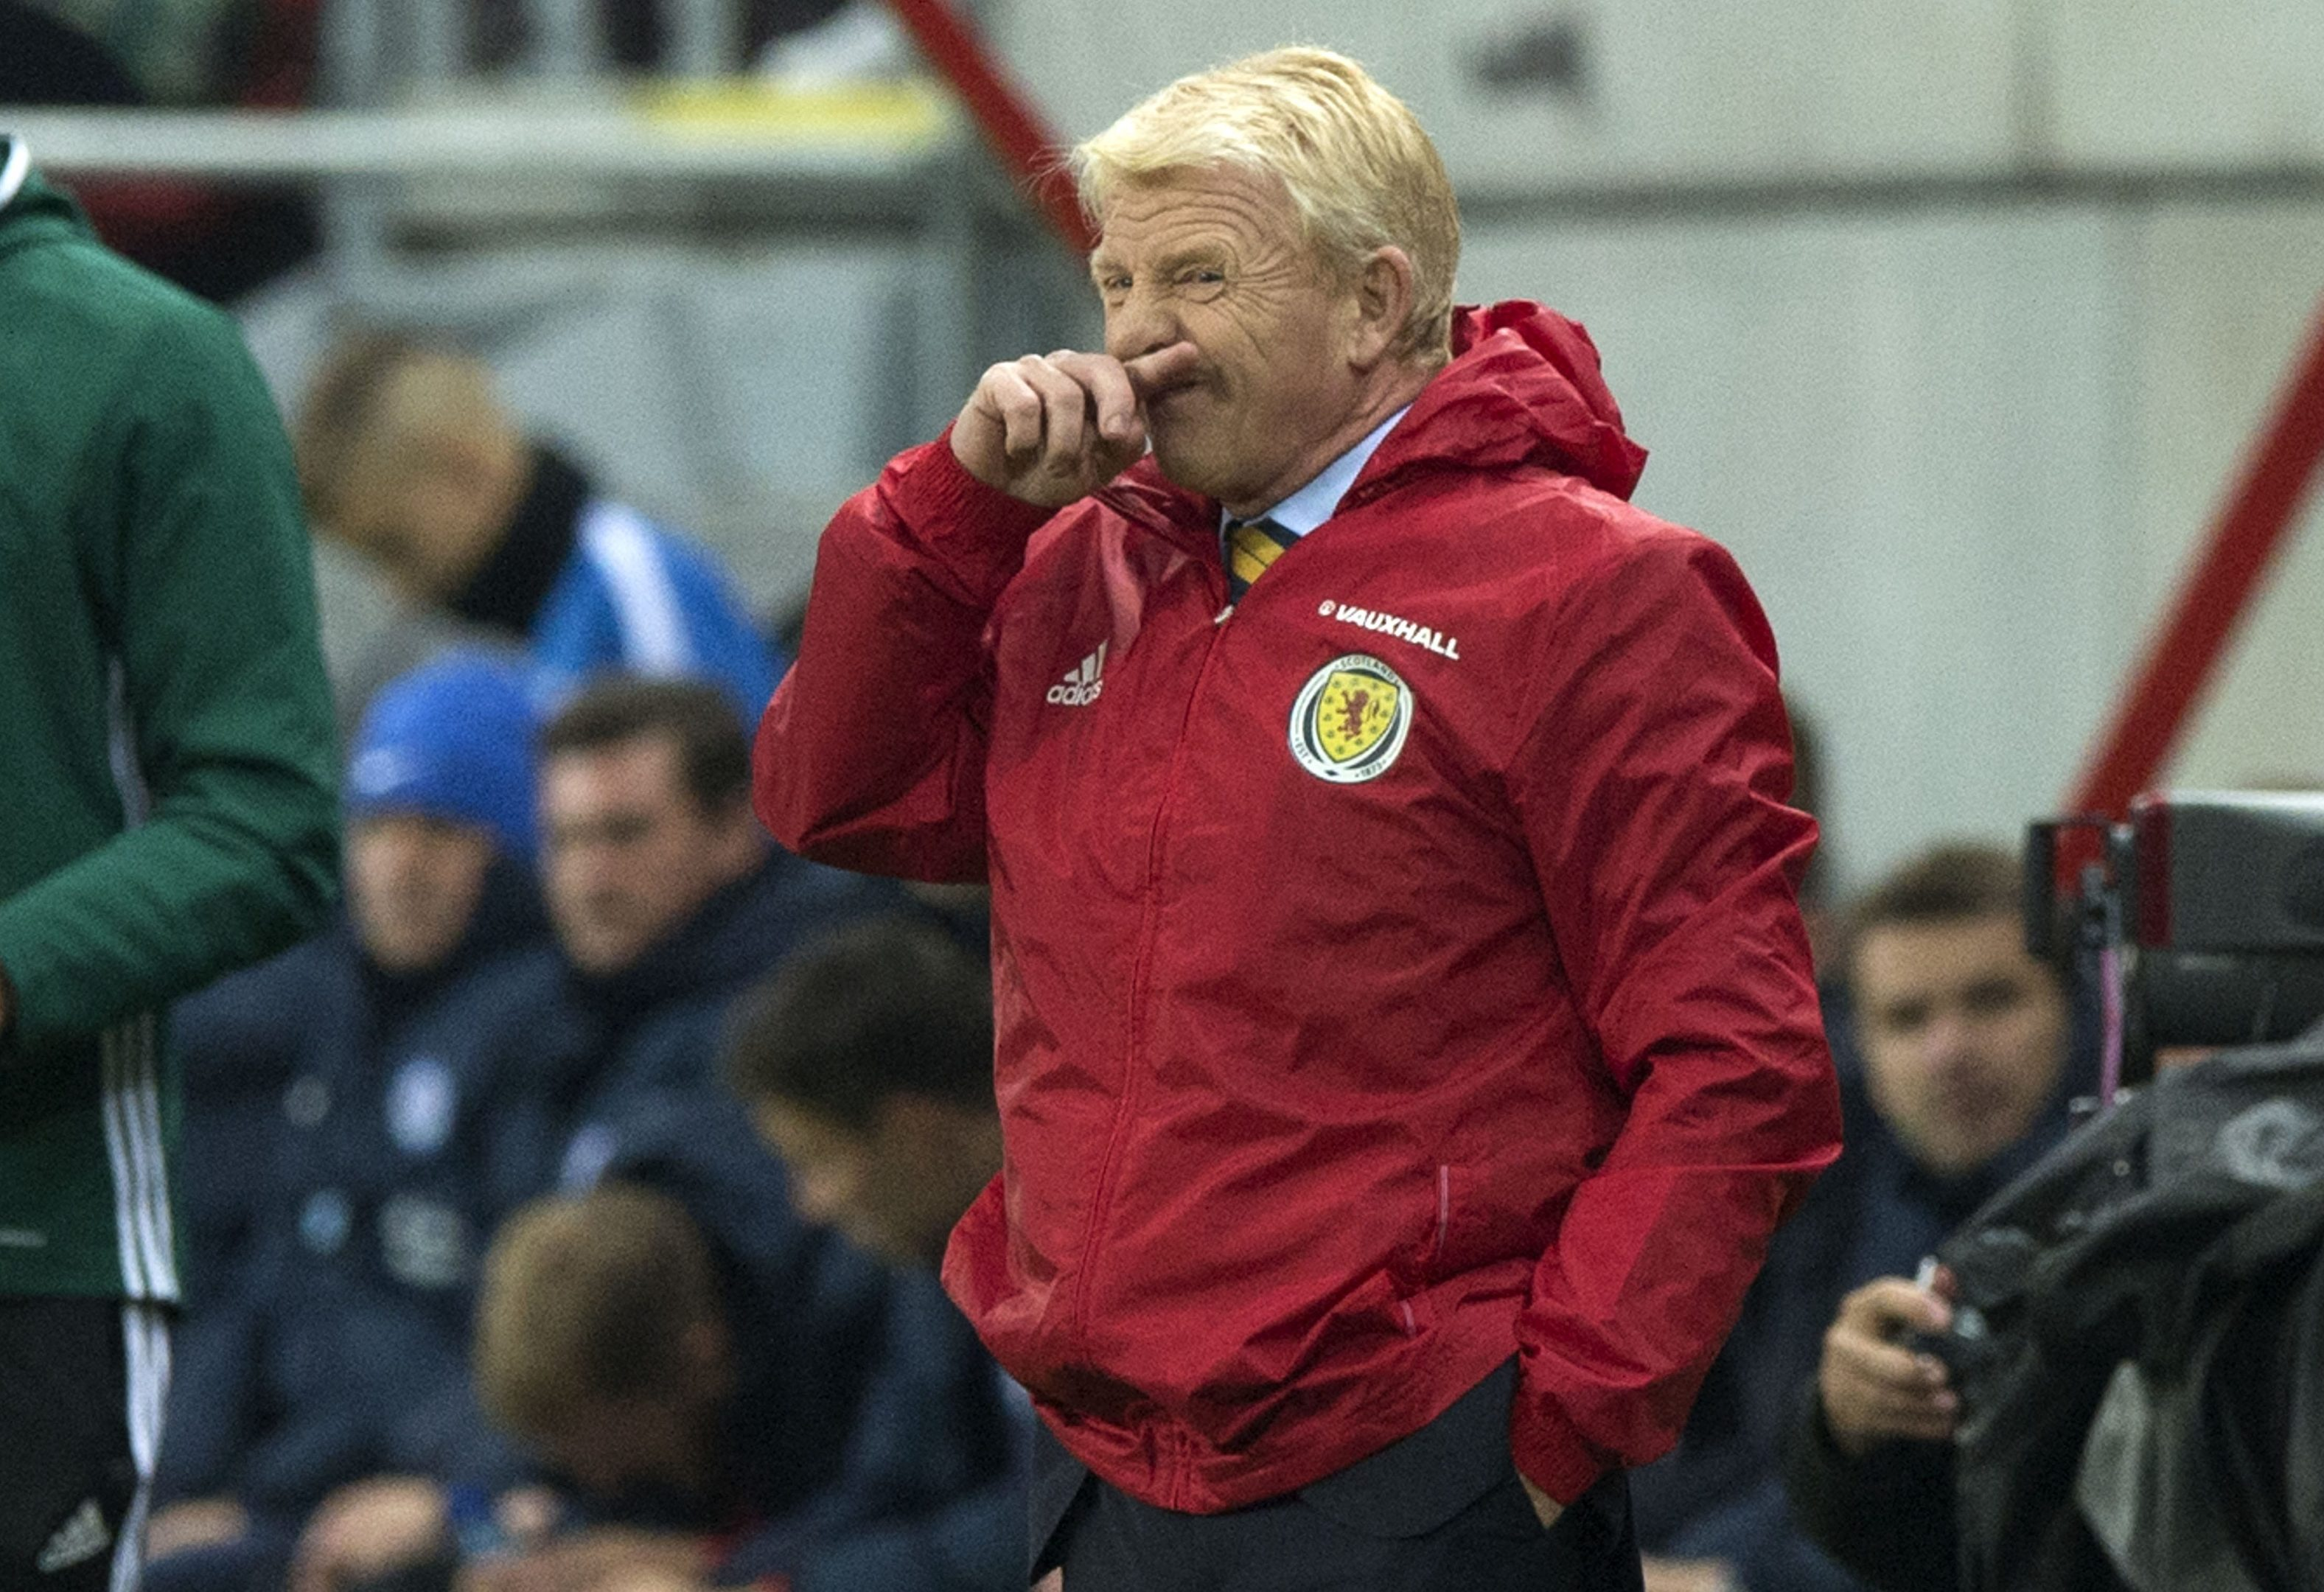 Gordon Strachan on the touchline during last night's game.